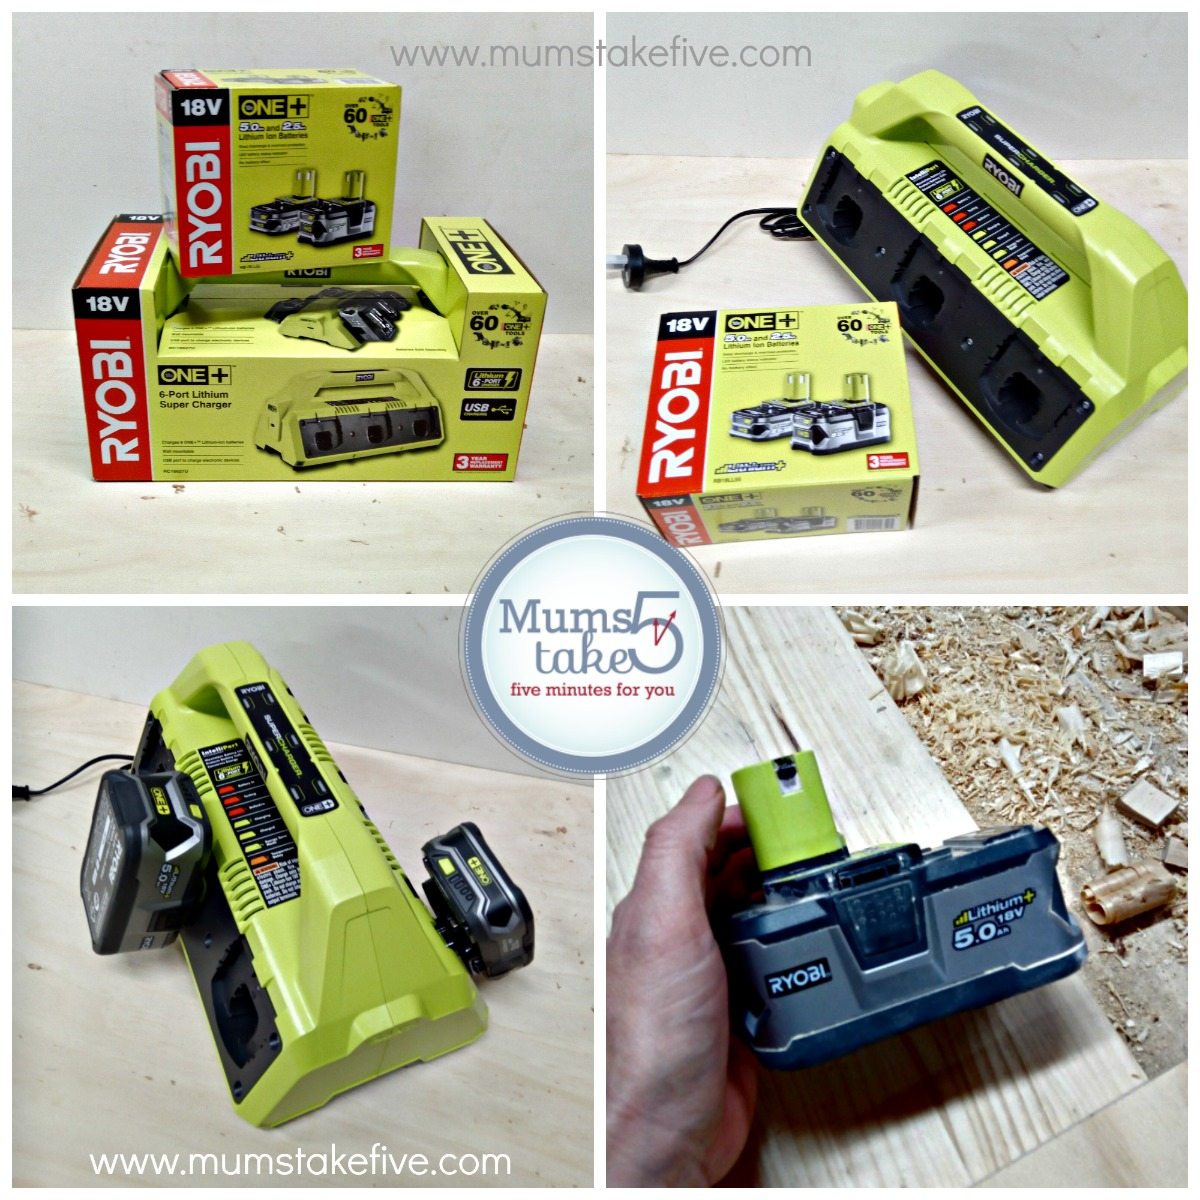 Ryobi ONE+  Super Charger Battery